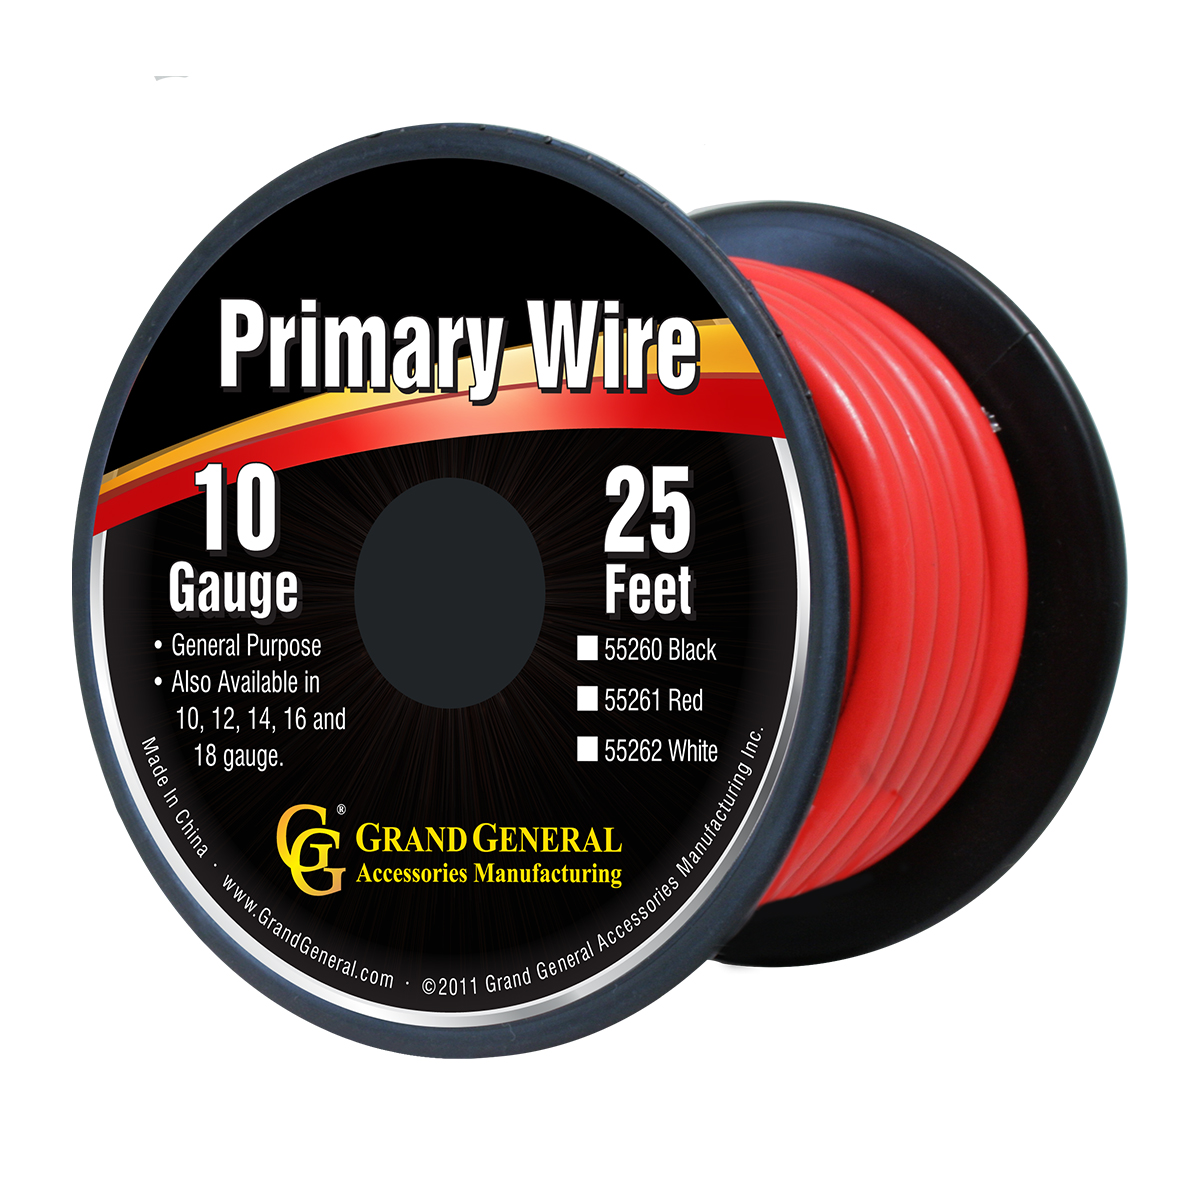 55261/55261SP Primary Wire in 10 Gauge, 25 Feet